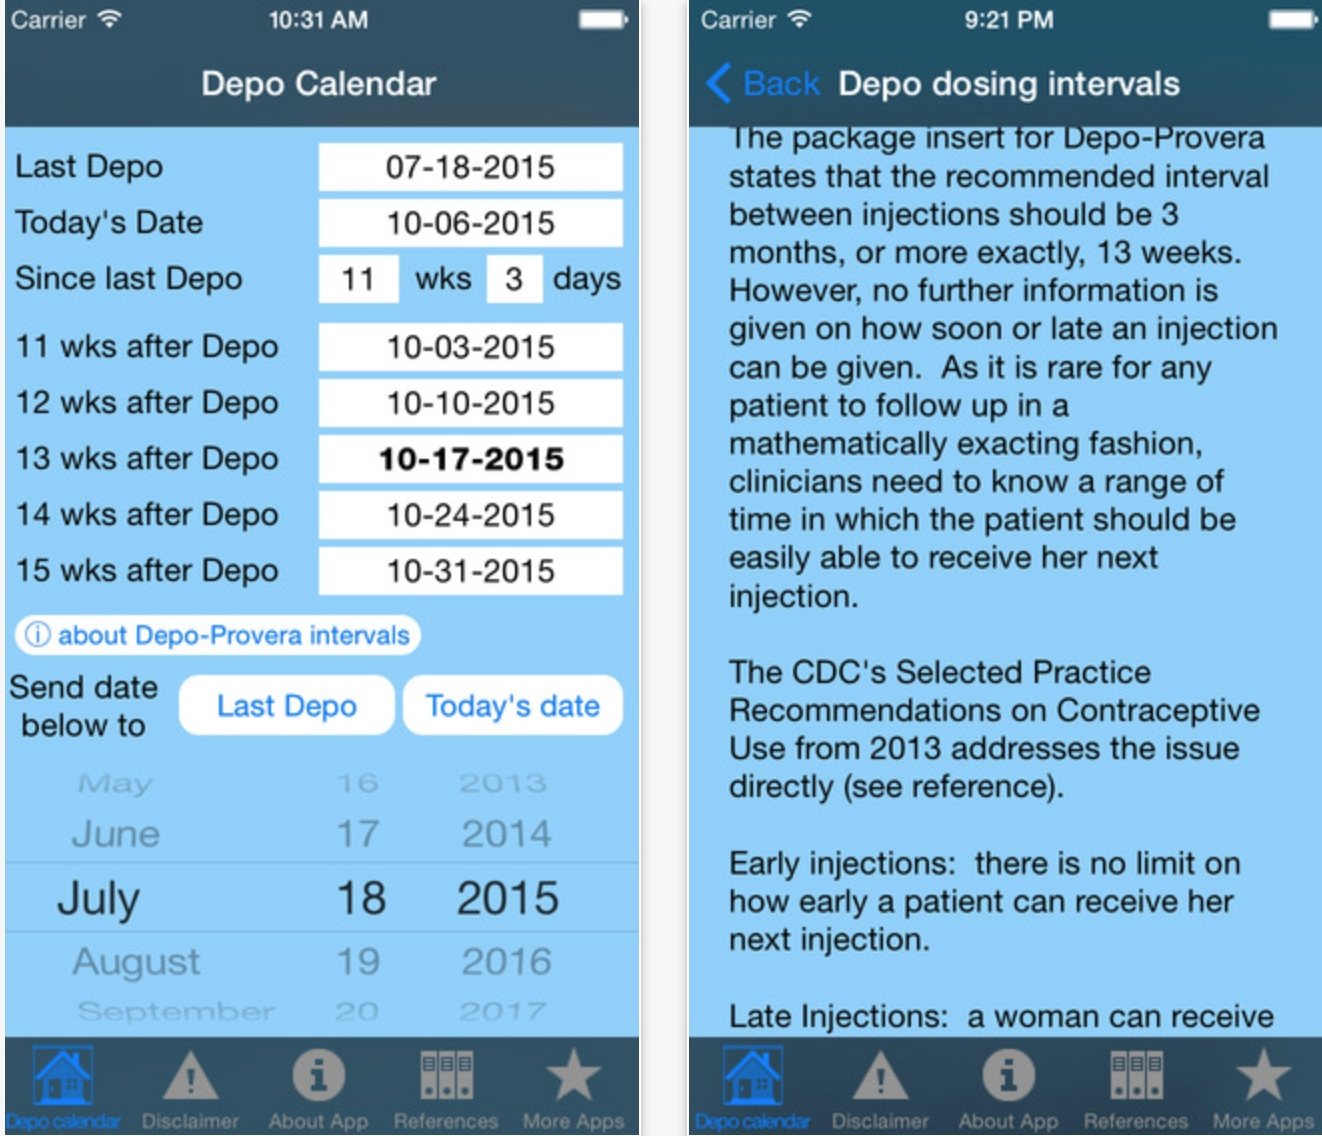 Depo Calendar App Could Significantly Improve Contraception  Depo Calendar